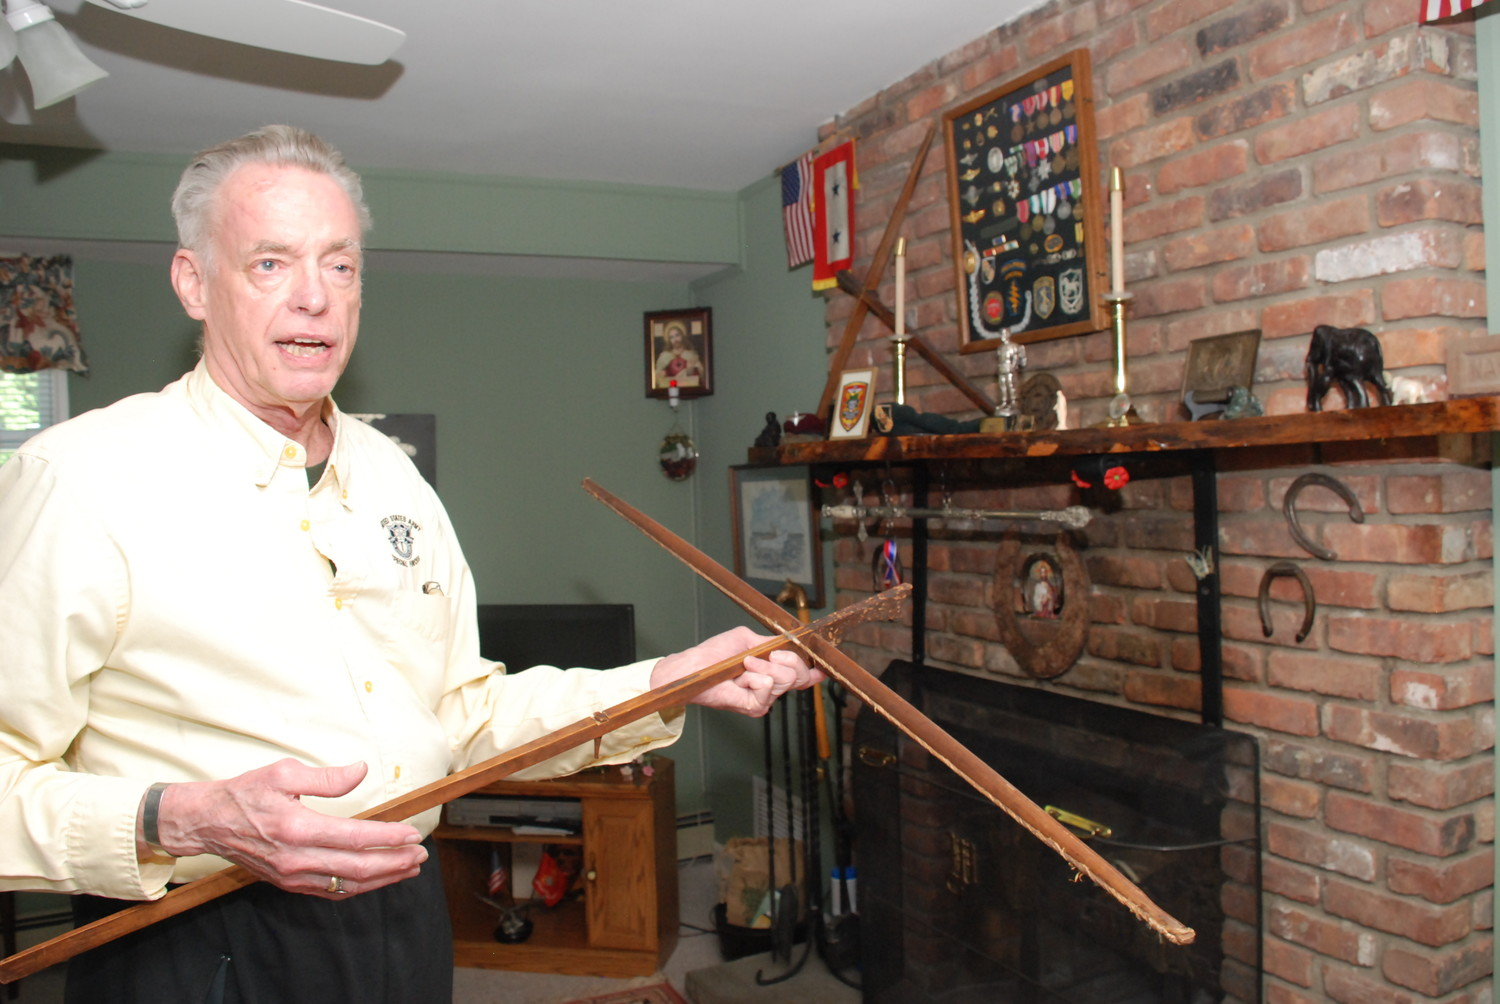 Scott Whitting, a Green Beret who served in Vietnam, showed off a crossbow gifted to him by the indigenous Vietnamese with whom he was embedded.